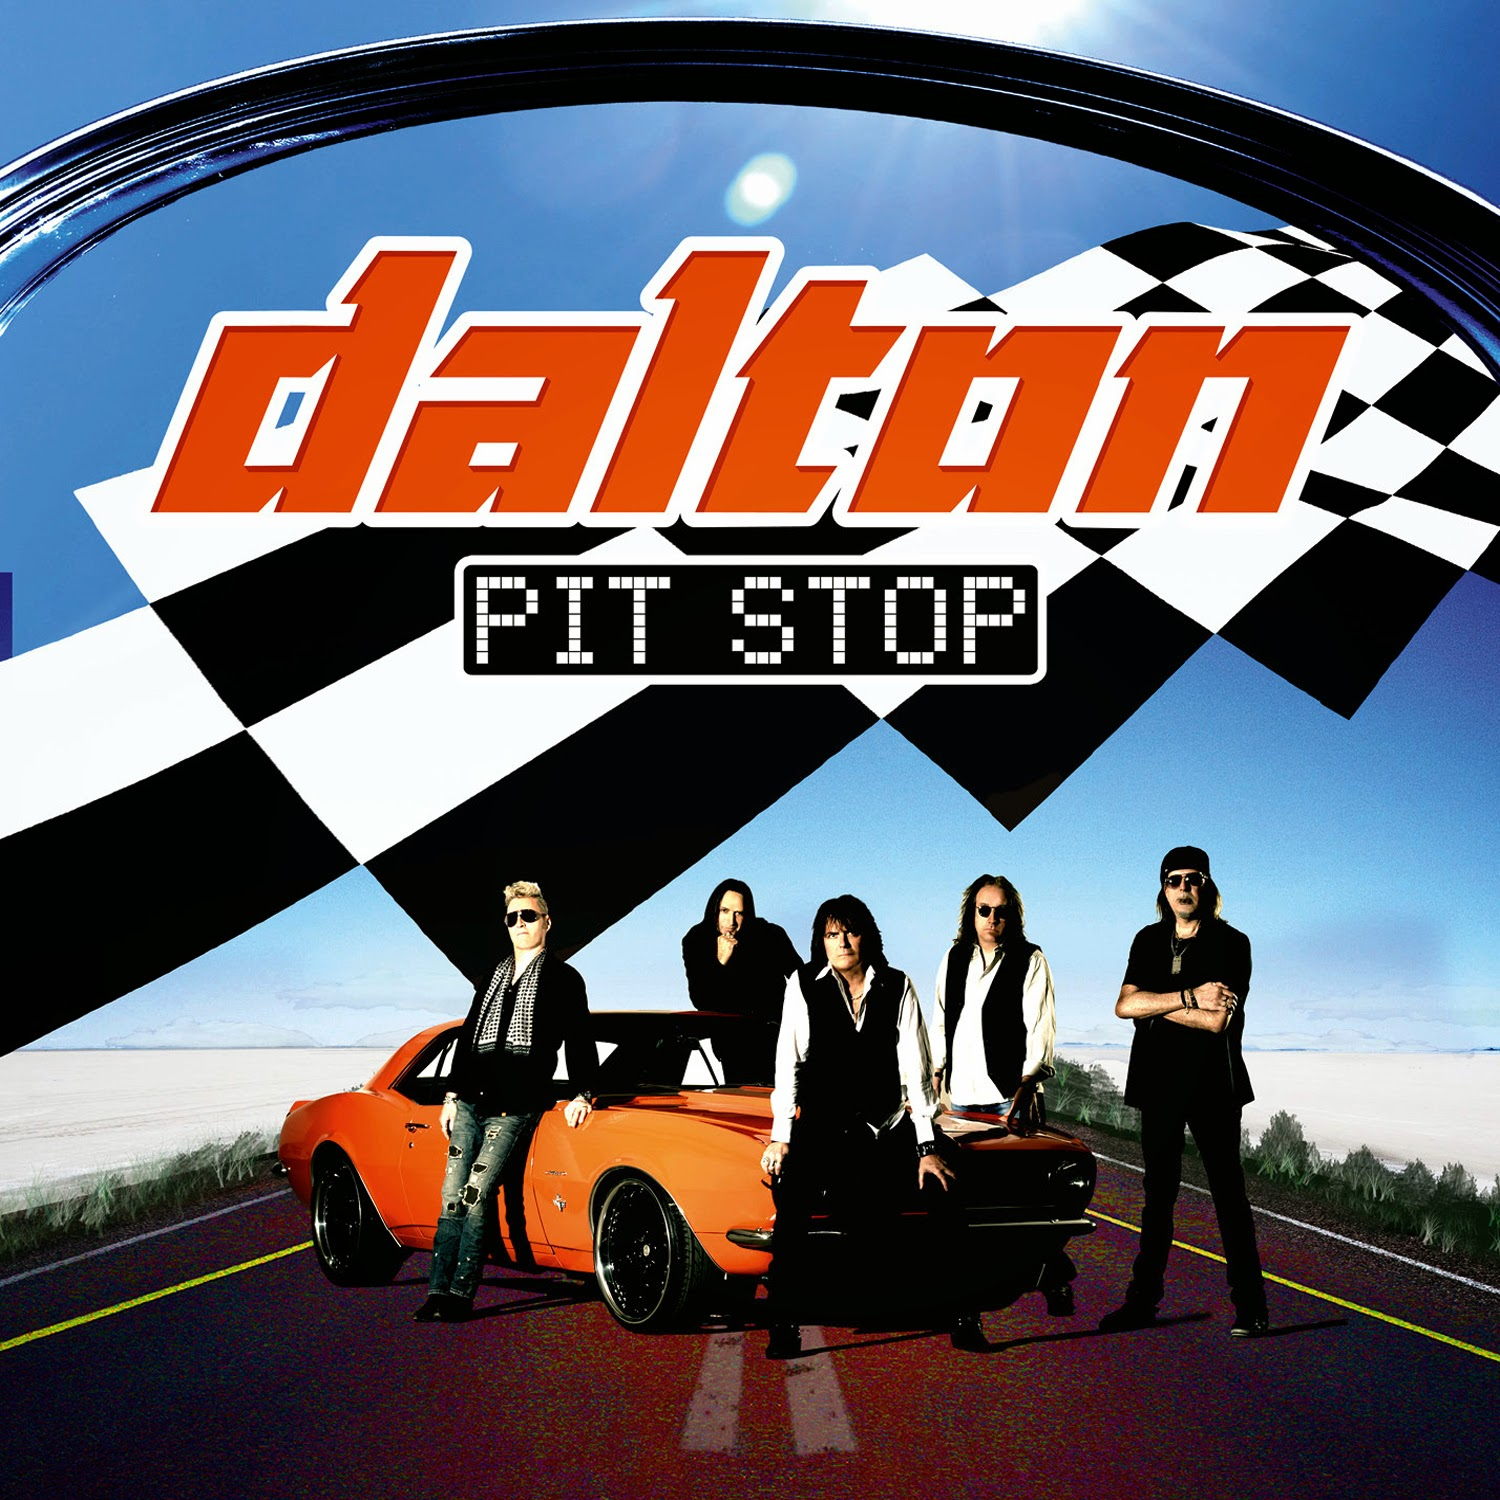 http://rock-and-metal-4-you.blogspot.de/2014/11/cd-review-dalton-pit-stop.html